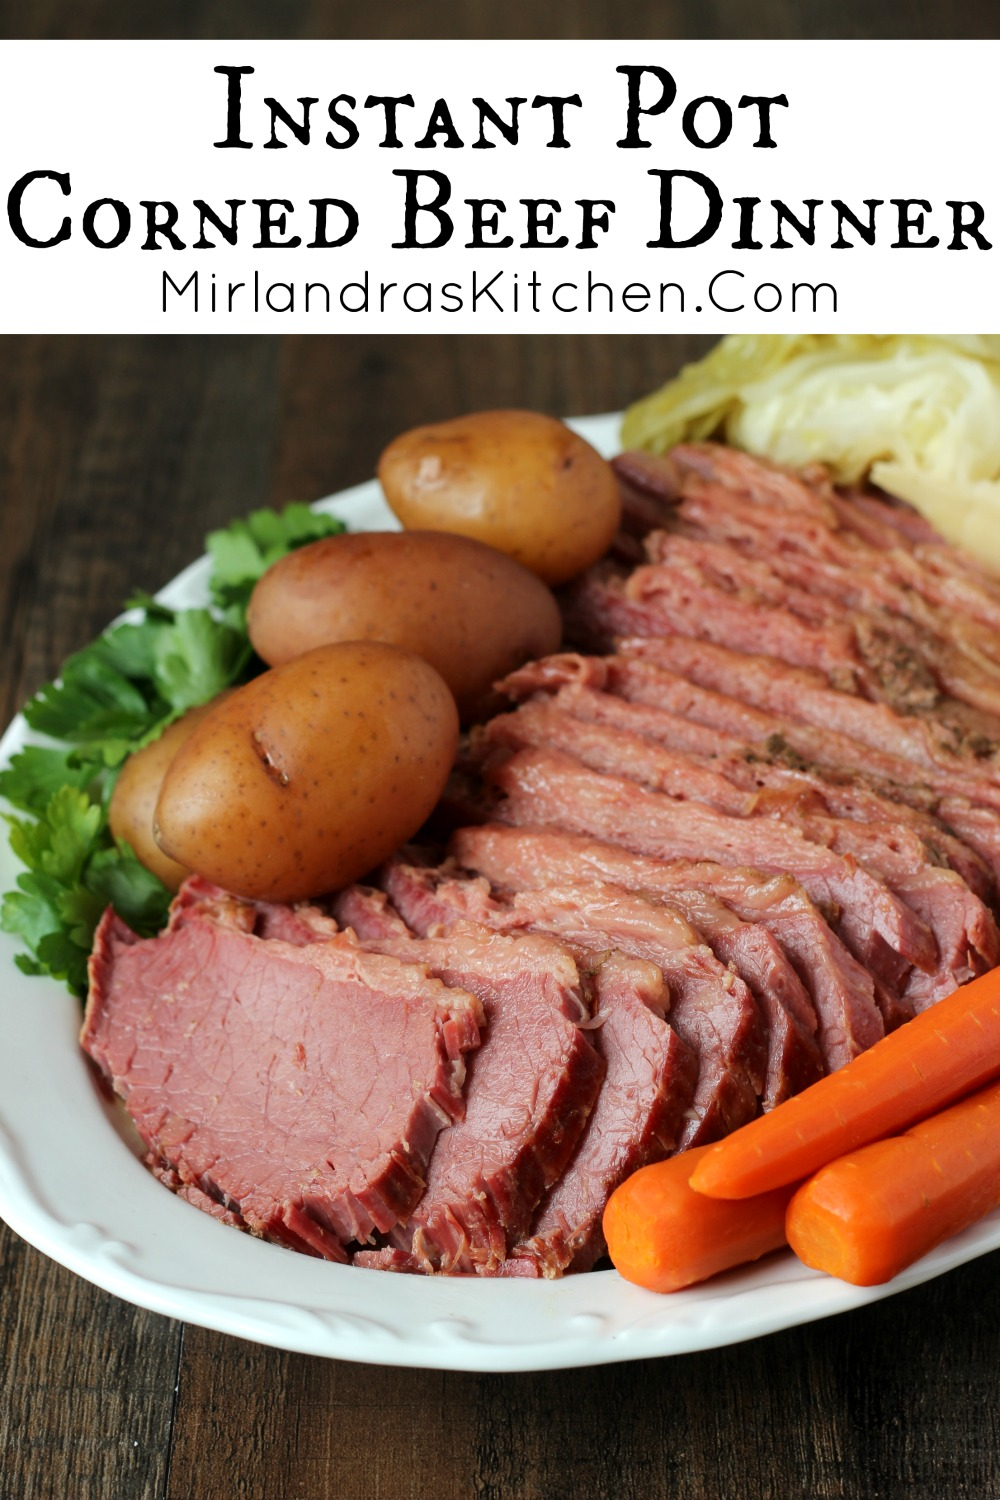 Corned Beef Dinner is my favorite thing to make in the Instant Pot. It is super tender and flavorful - the best corned beef ever! Start to finish it takes just two hours and comes out perfectly every time. My recipe has some secret spices for that perfect corned beef flavor and I walk you through each step of using the Instant Pot so dinner will be easy.